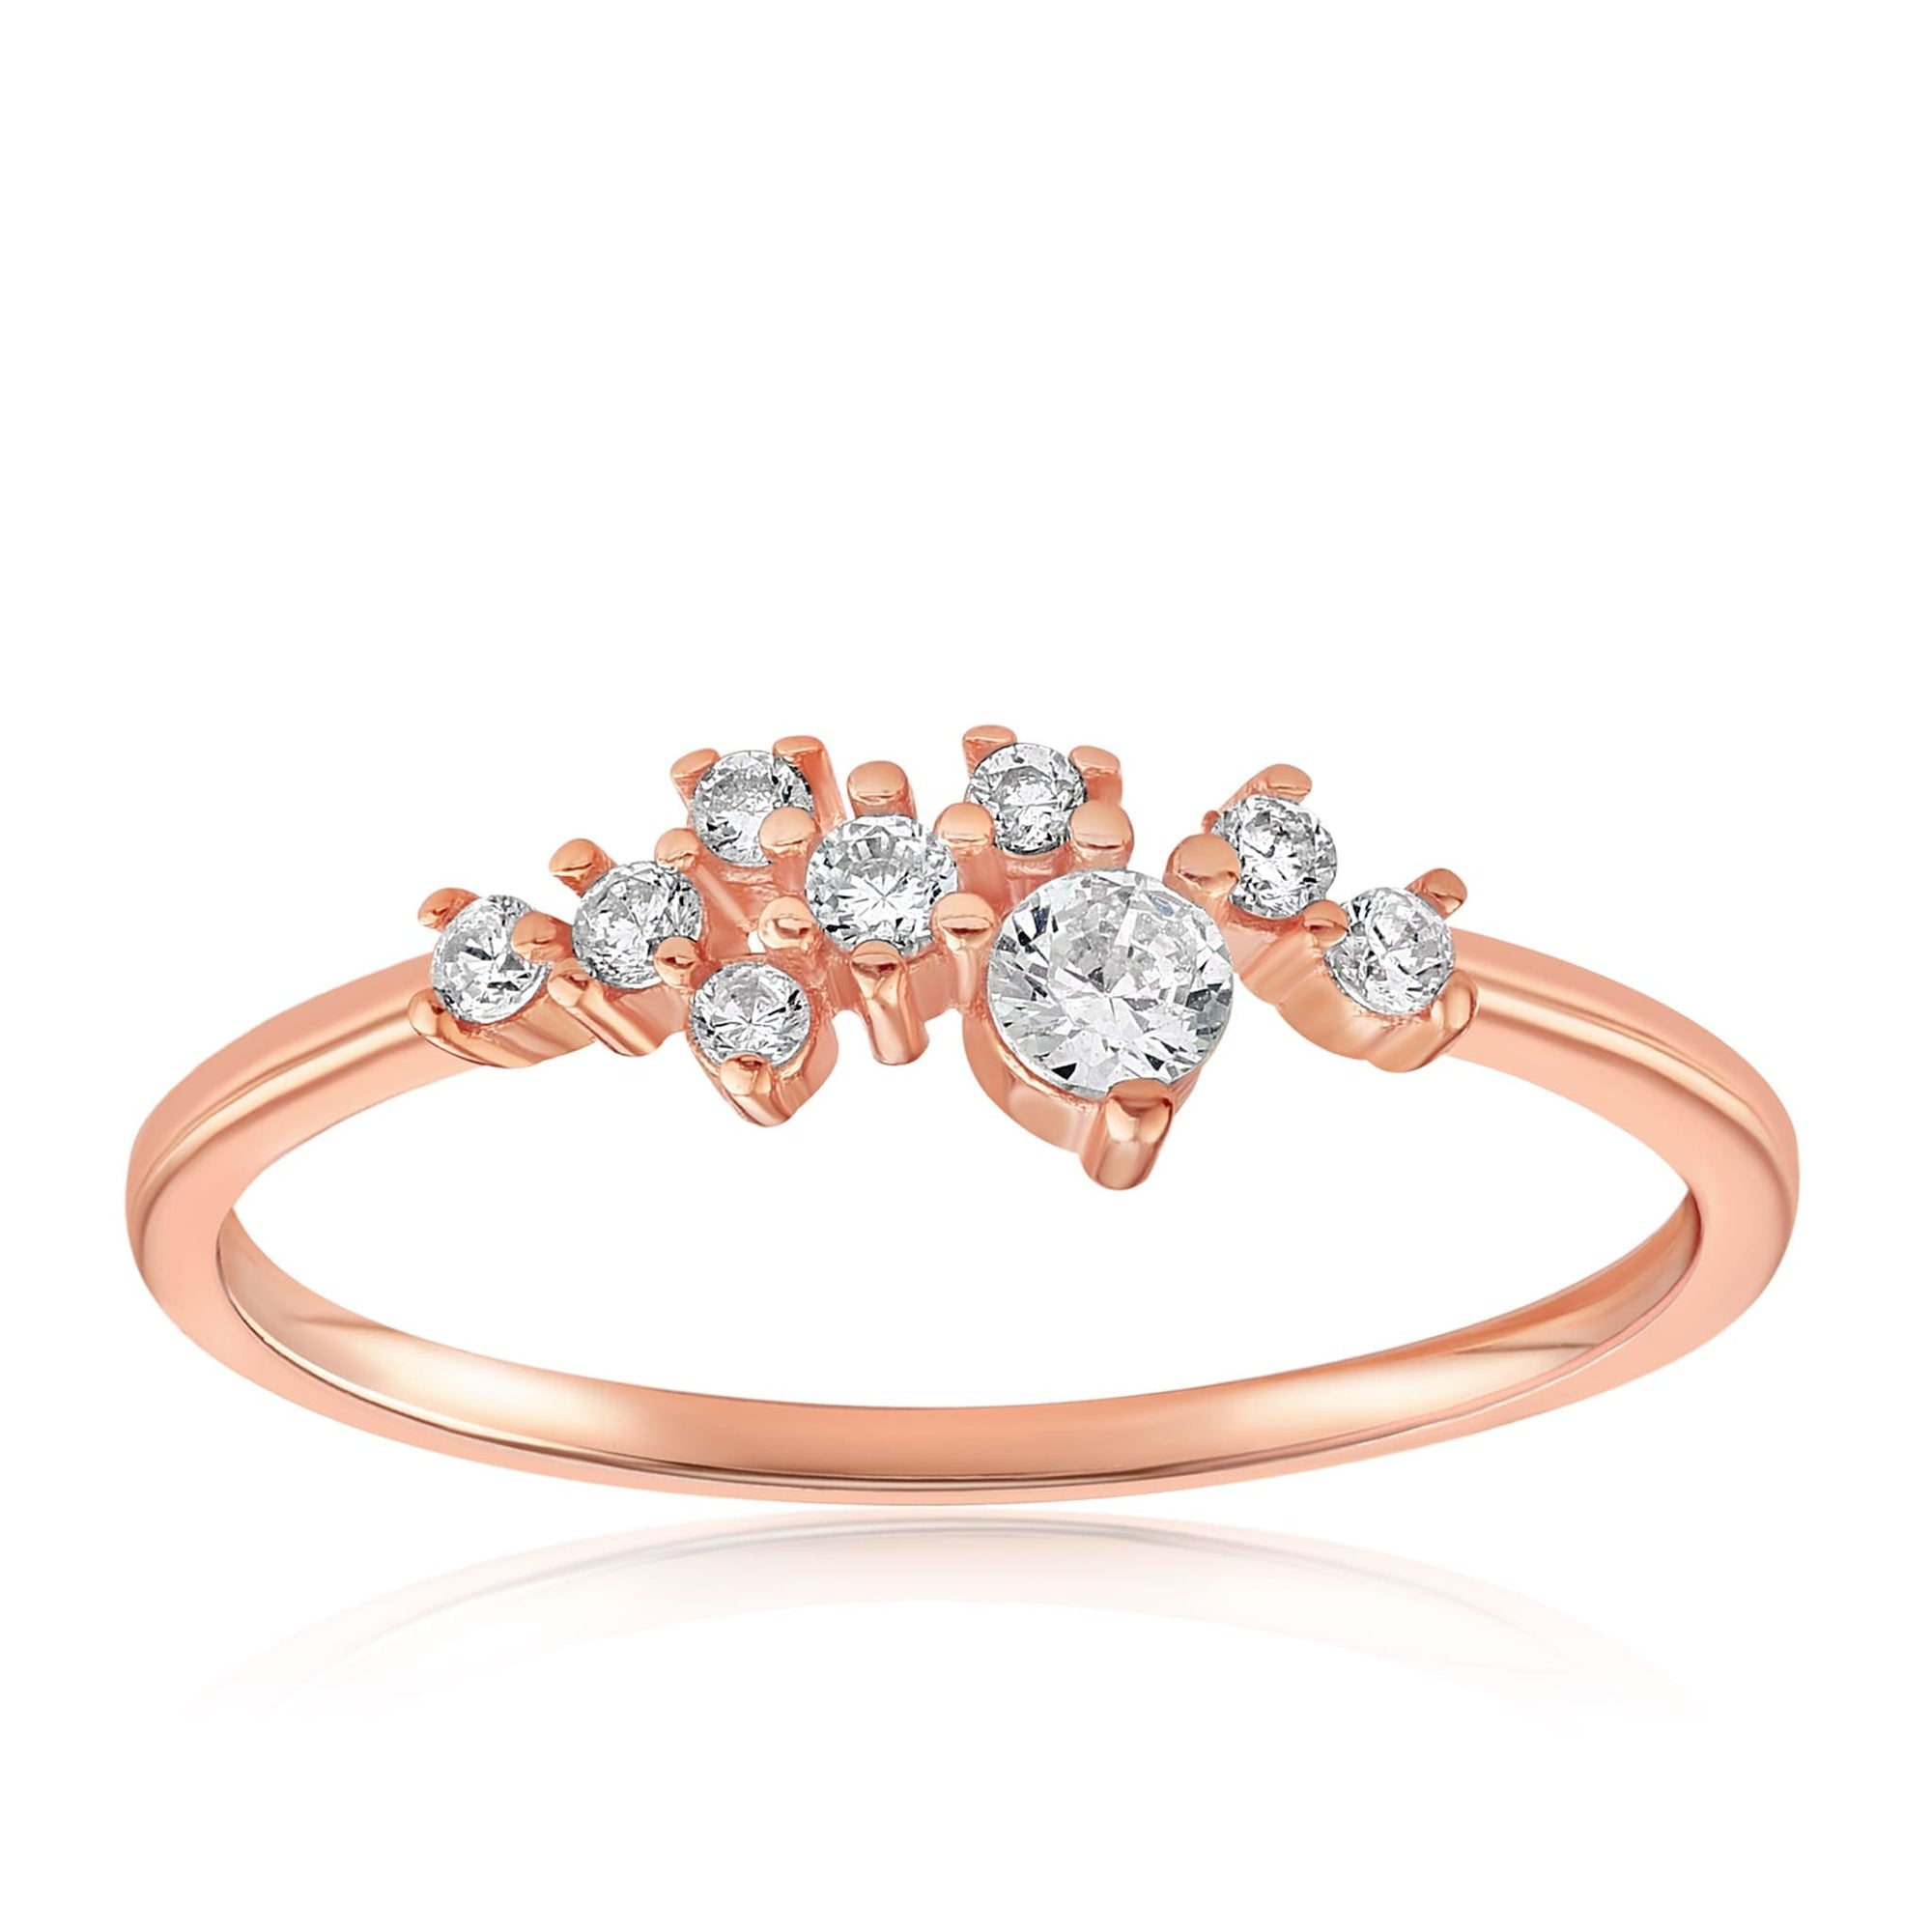 Sasha Sparkle Ring - Front View Facing Up - 18K Rose Gold Vermeil